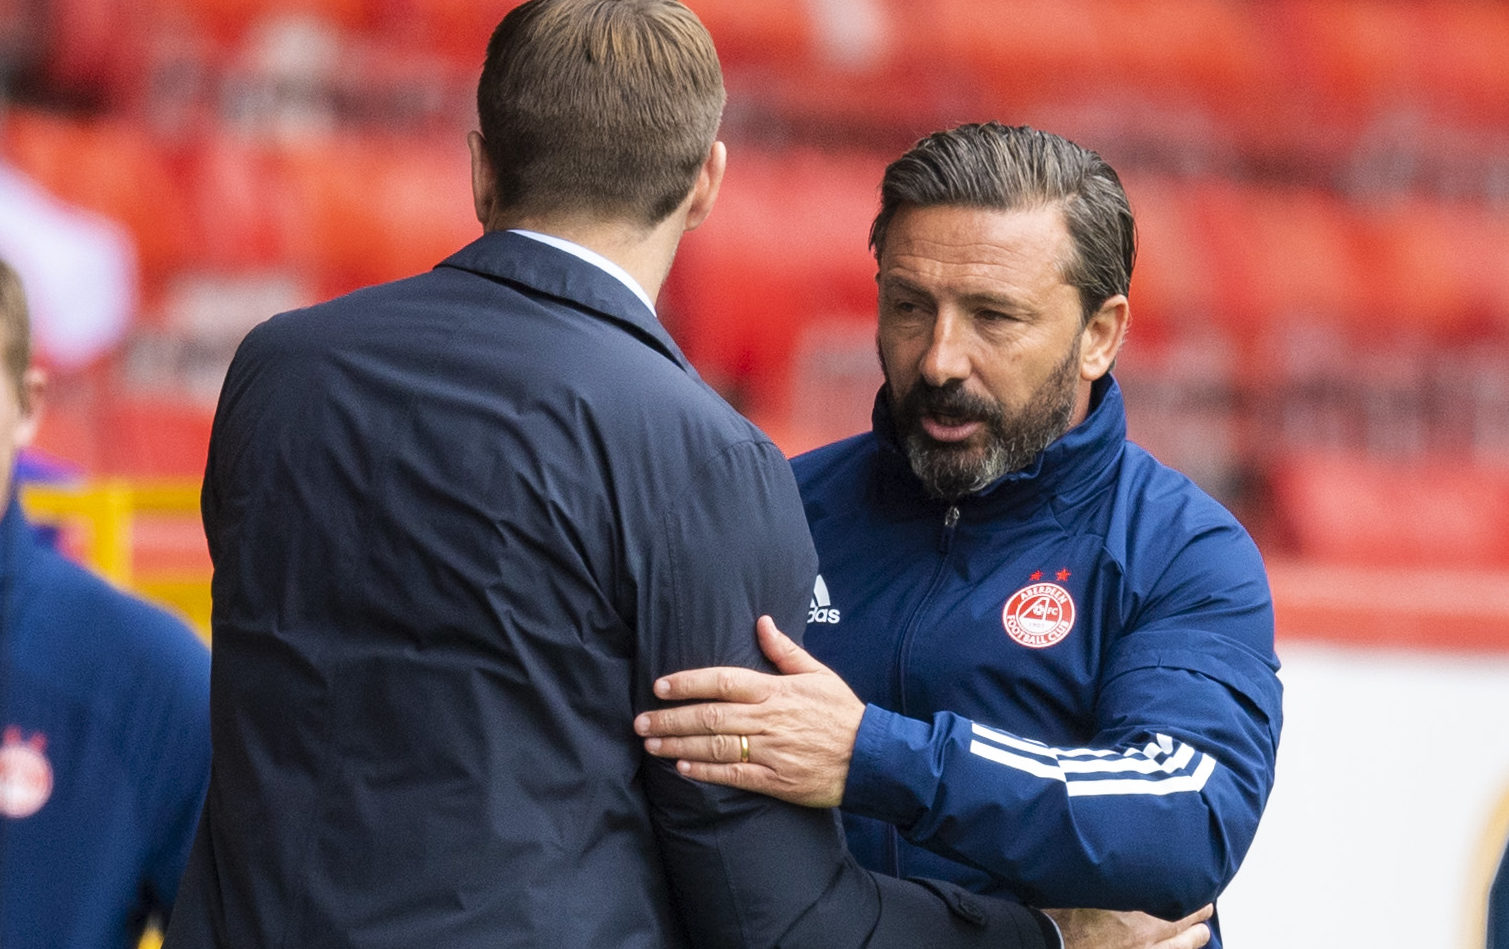 Derek McInnes with Steven Gerrard after Aberdeen had lost to Rangers last Saturday. But that was just the start of the Dons boss' problems